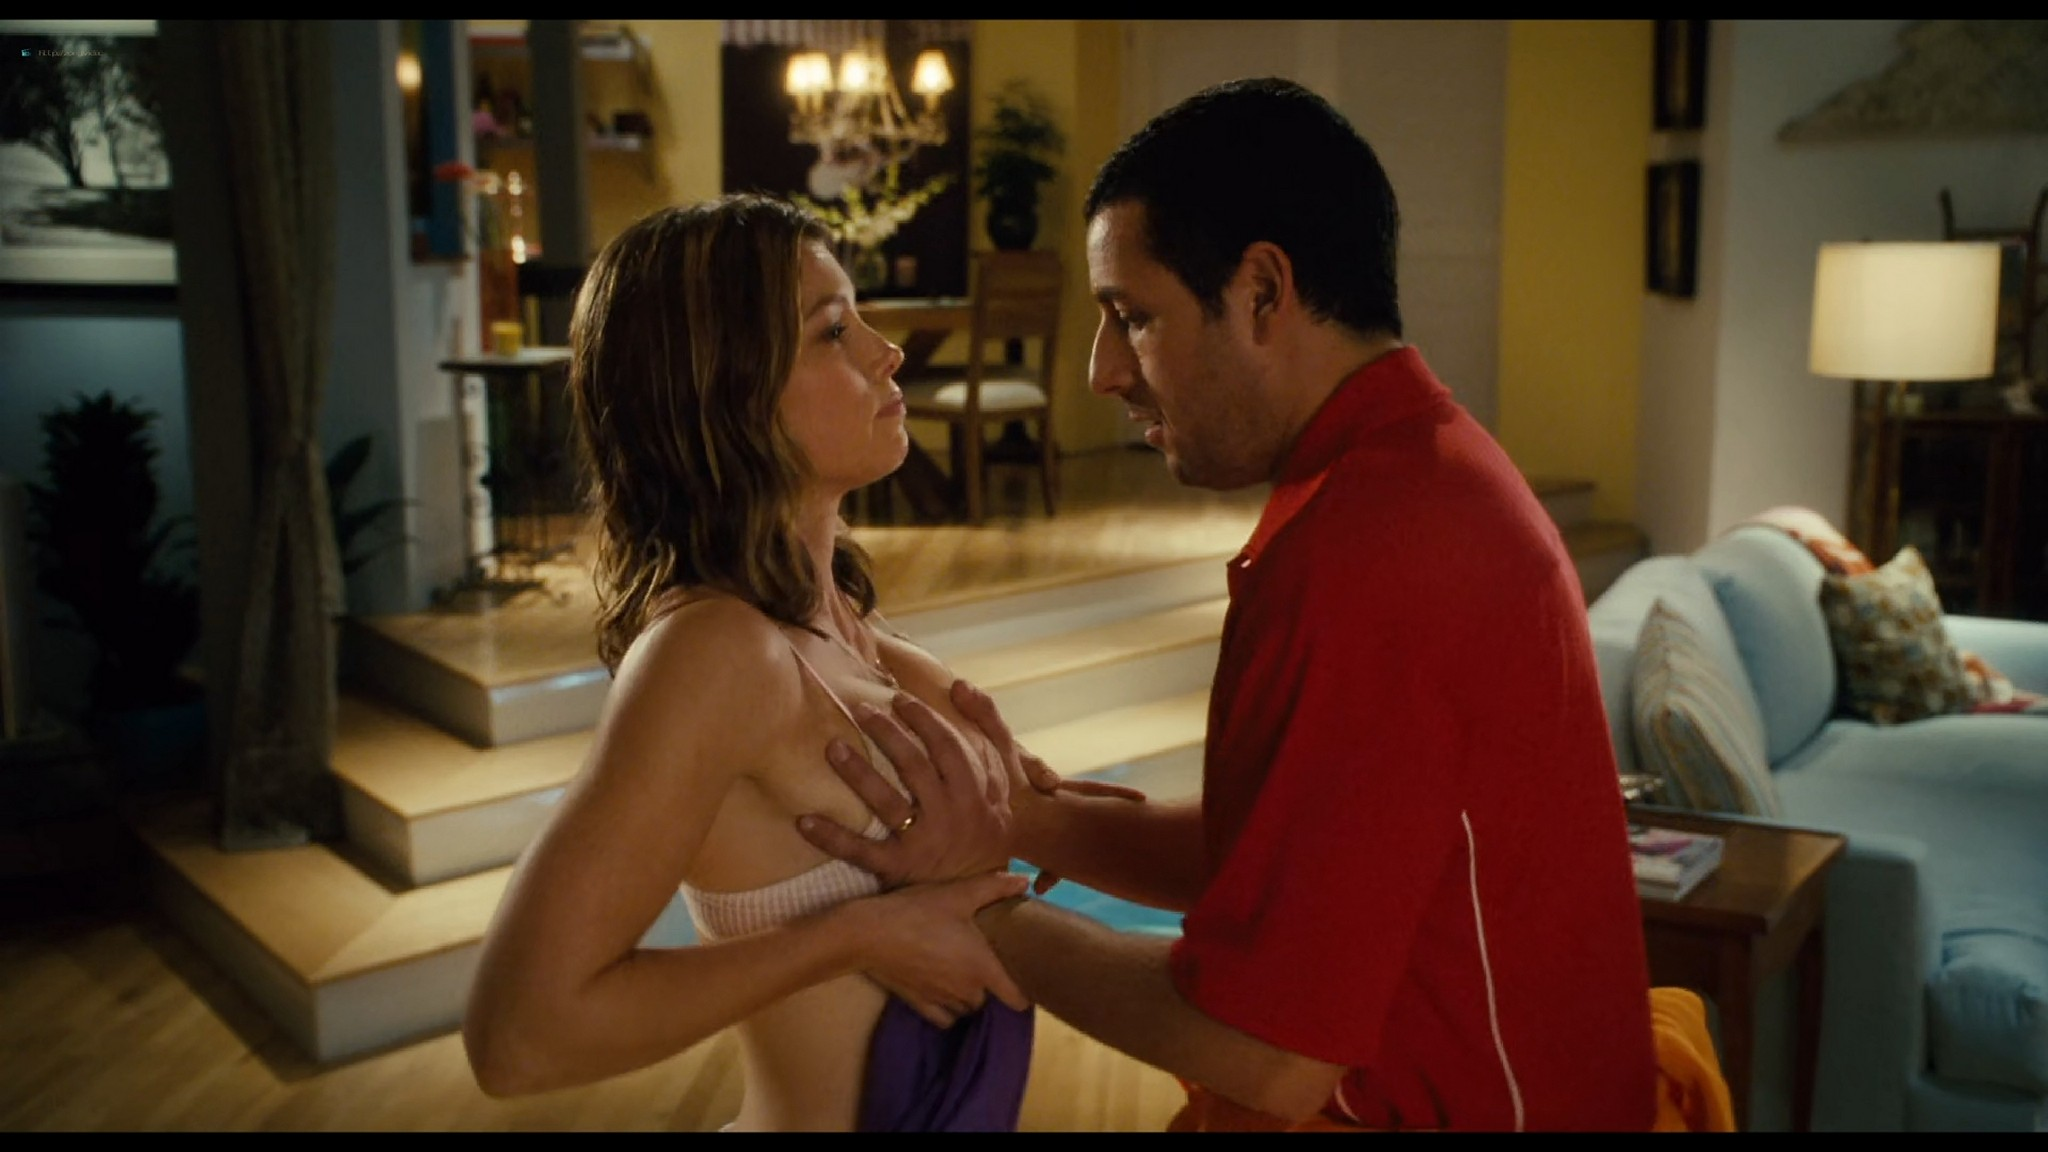 Jessica Biel hot sexy and Adam Sandler groping her boobs others sexy too - I Now Pronounce You Chuck & Larry (2007) HD 1080p BluRay (5)